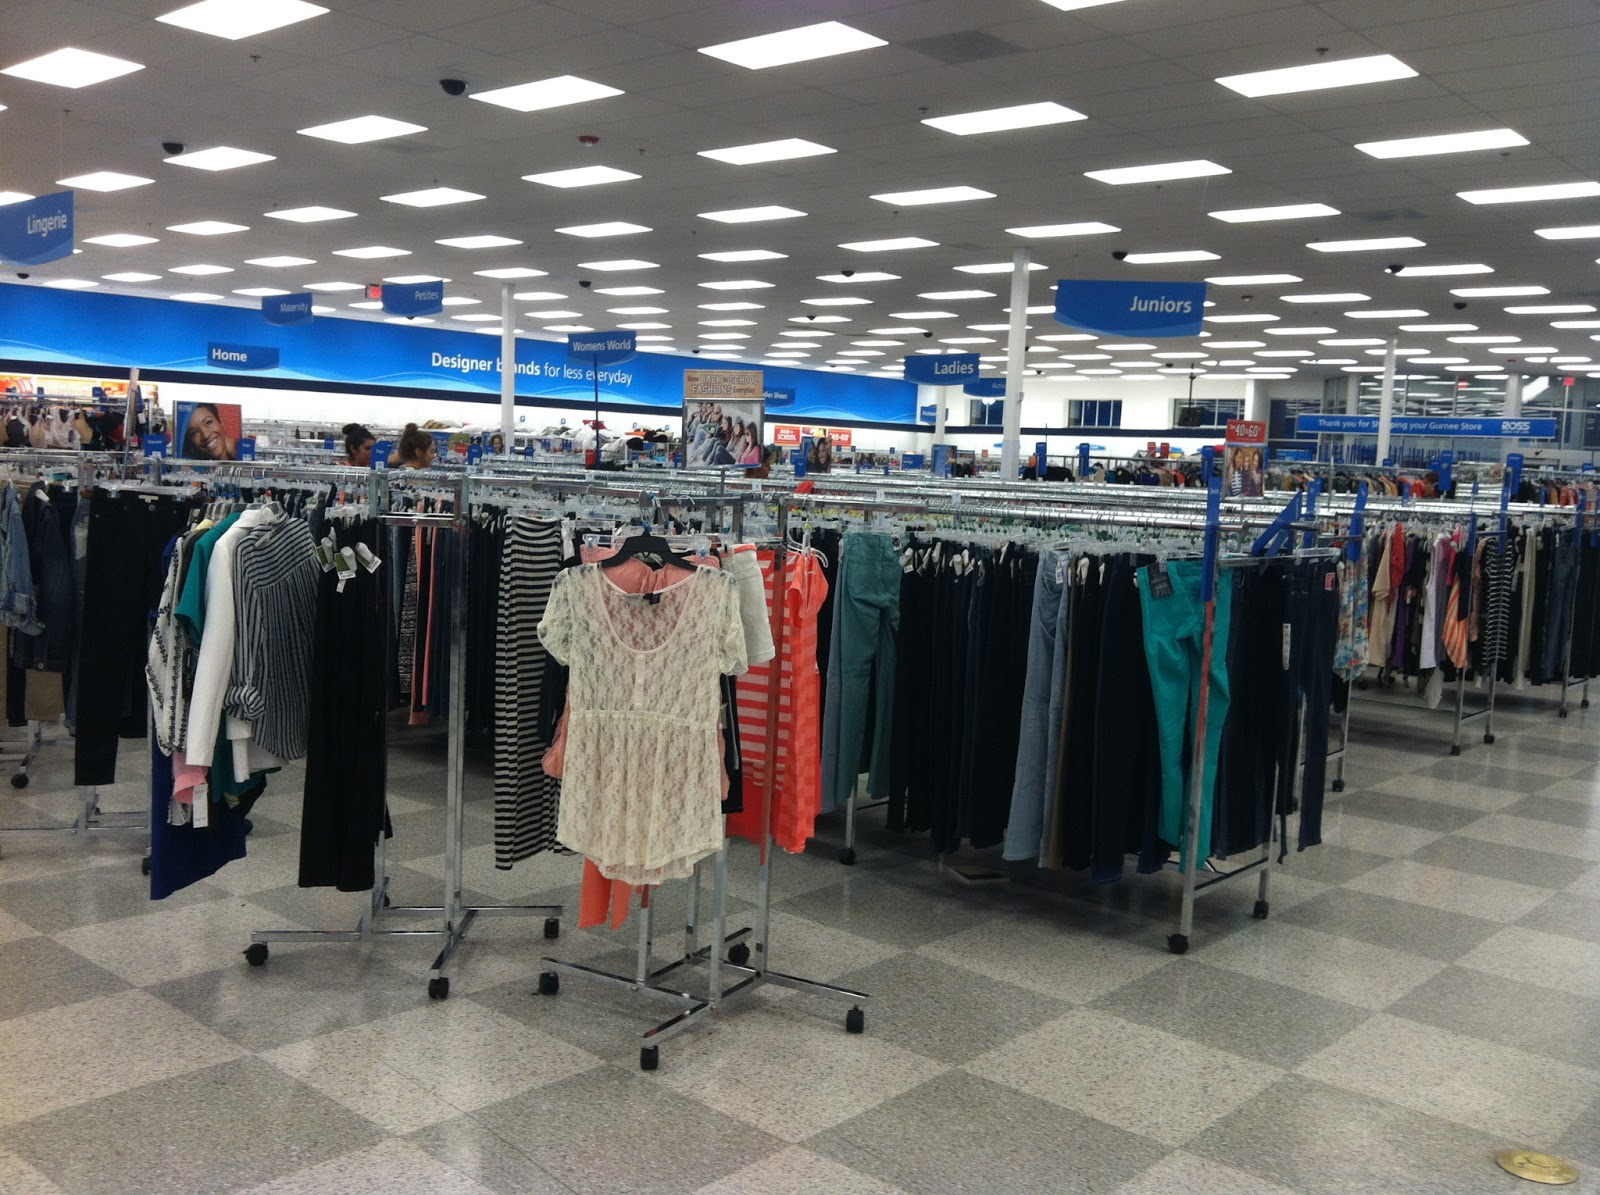 At Ross Stores, Inc., which includes Ross Dress for Less and dd's DISCOUNTS, treating our Associates, our communities and our environment with respect is a priority every day. We are also committed to ethical business practices as a cornerstone of our Company.